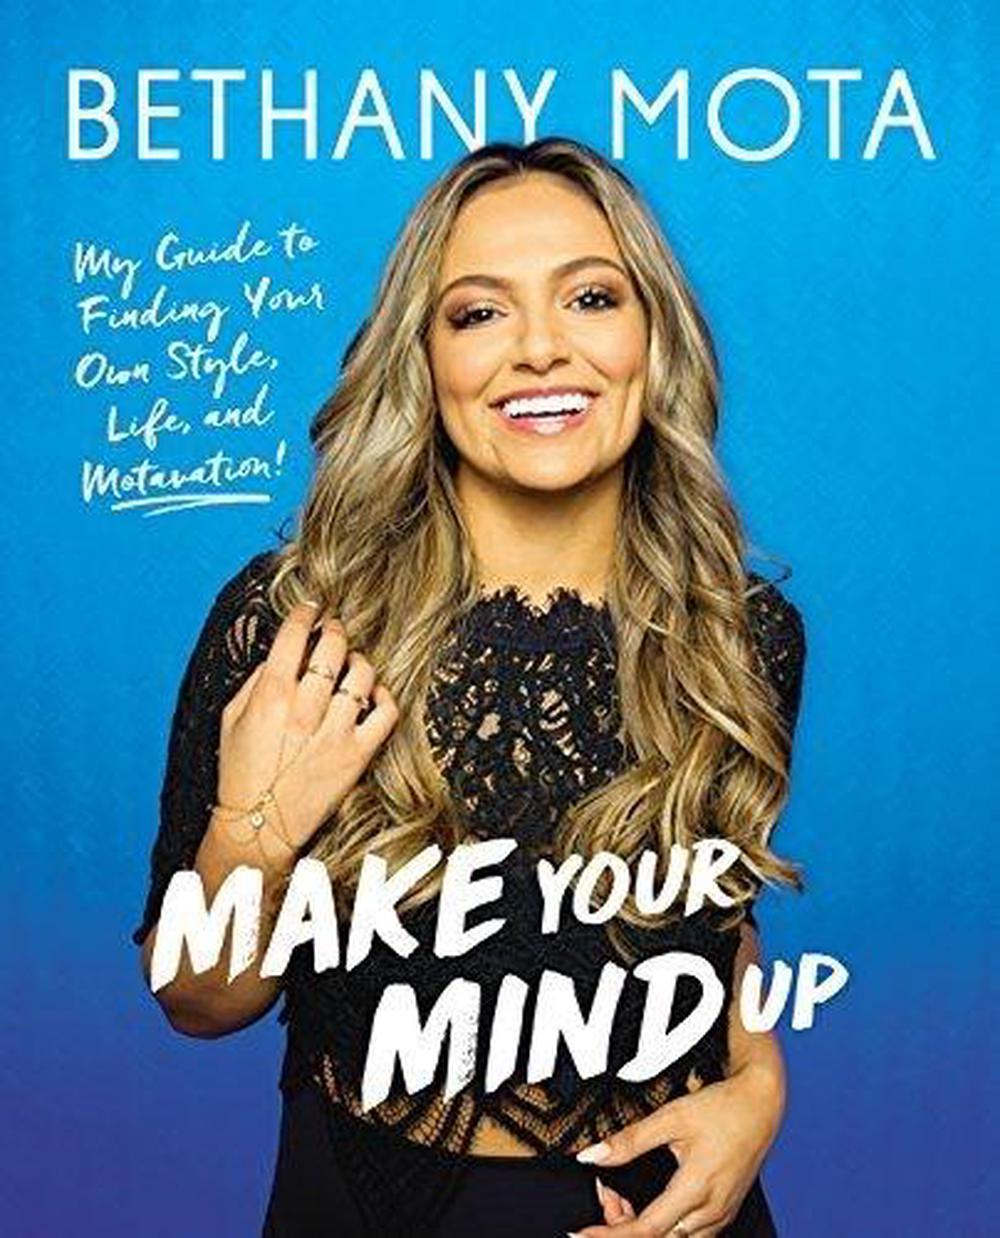 Make Your Mind Up by Bethany Mota Hardcover Book Free Shipping!